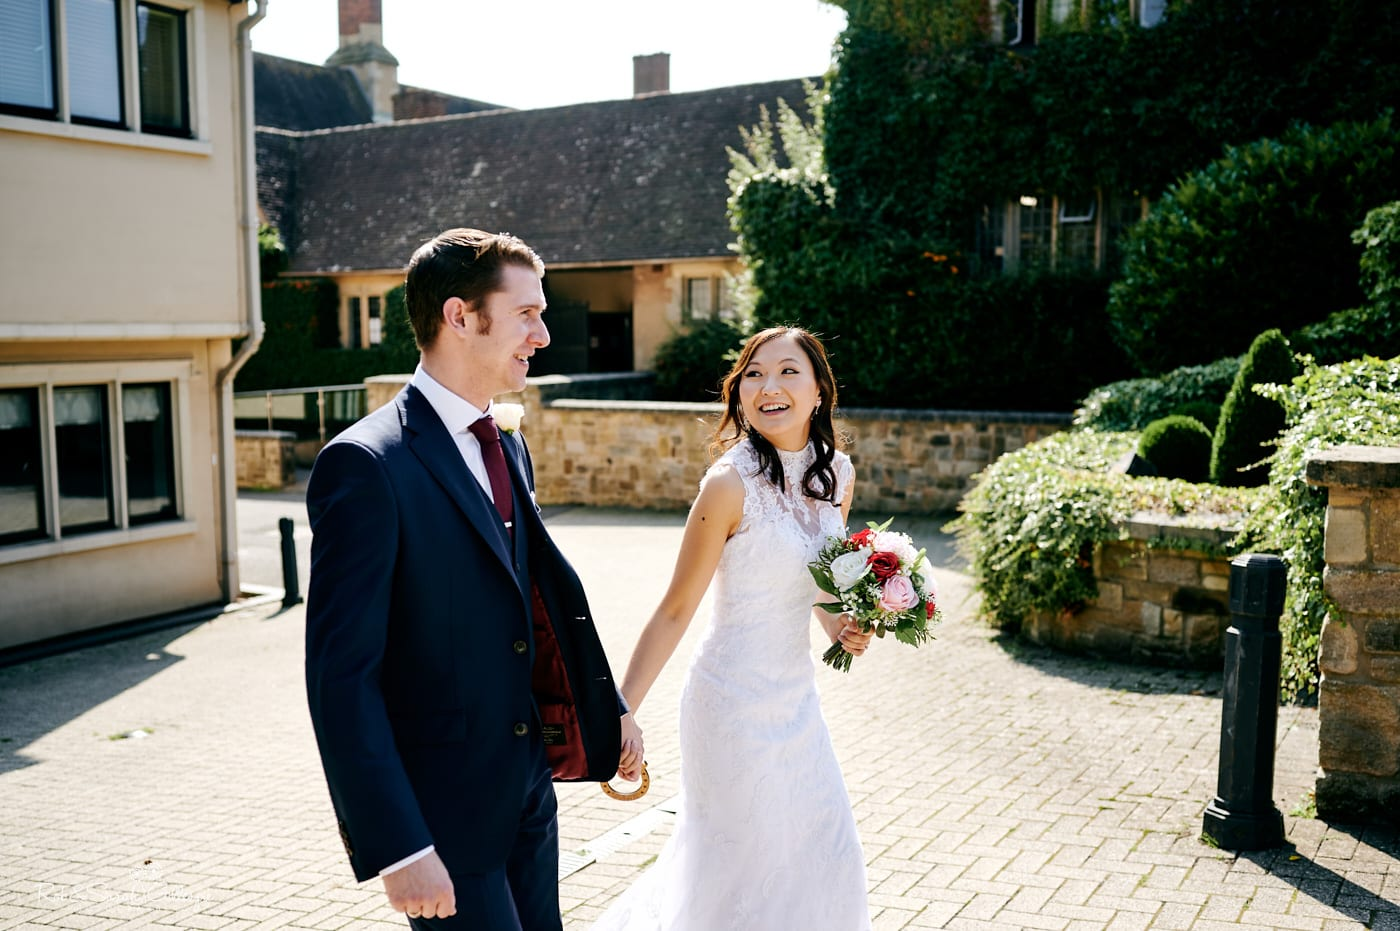 Newly married couple walk hand in hand